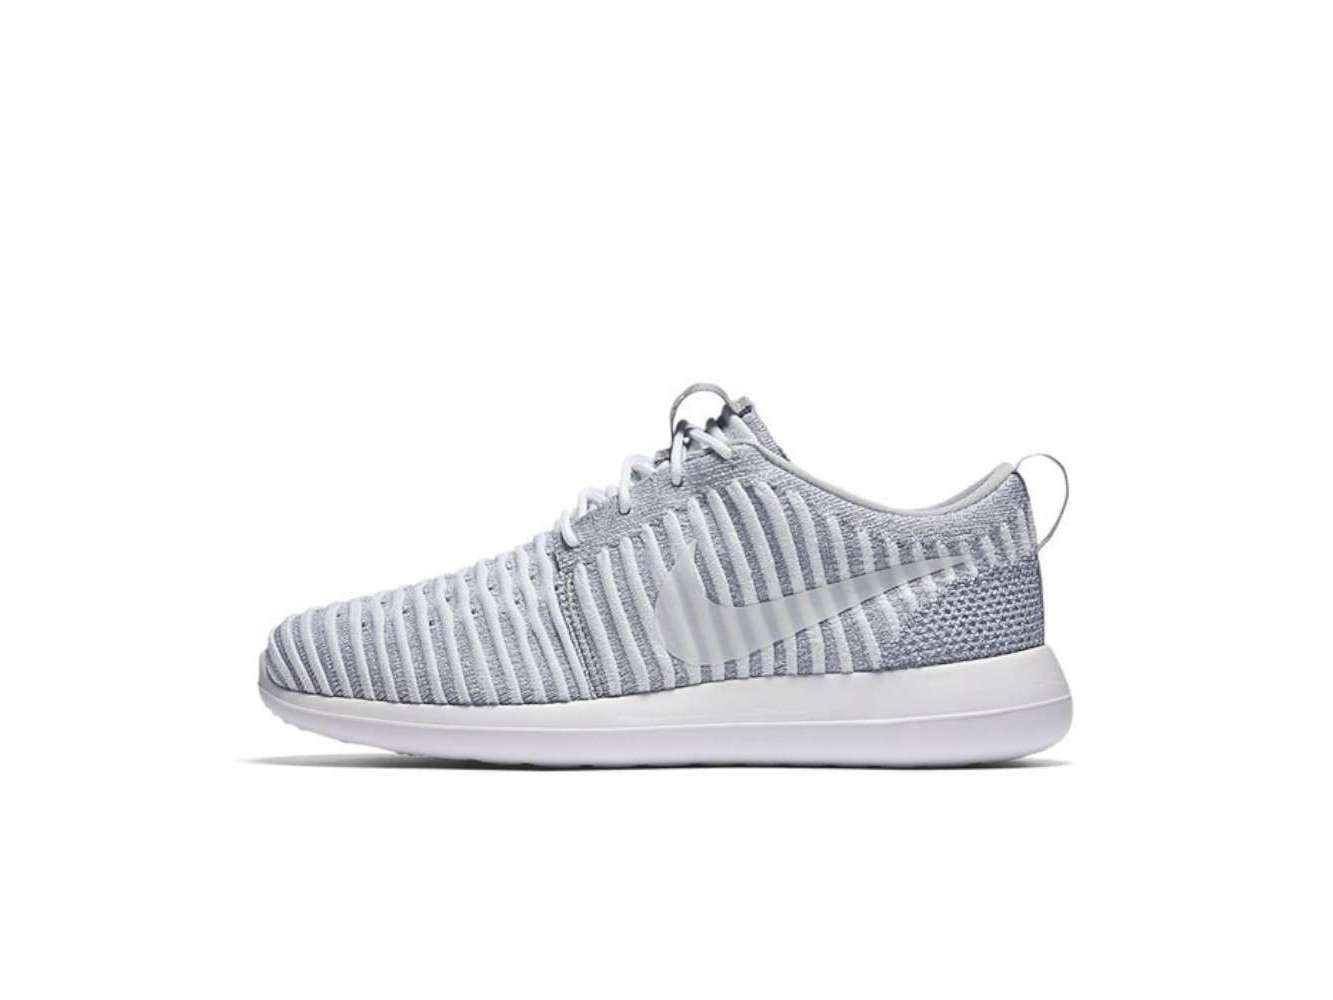 6fd6225f2a0c7 Nike Women s Roshe Two Flyknit Black   White Cool Grey Ankle-High Fashion  Sneaker - 7M